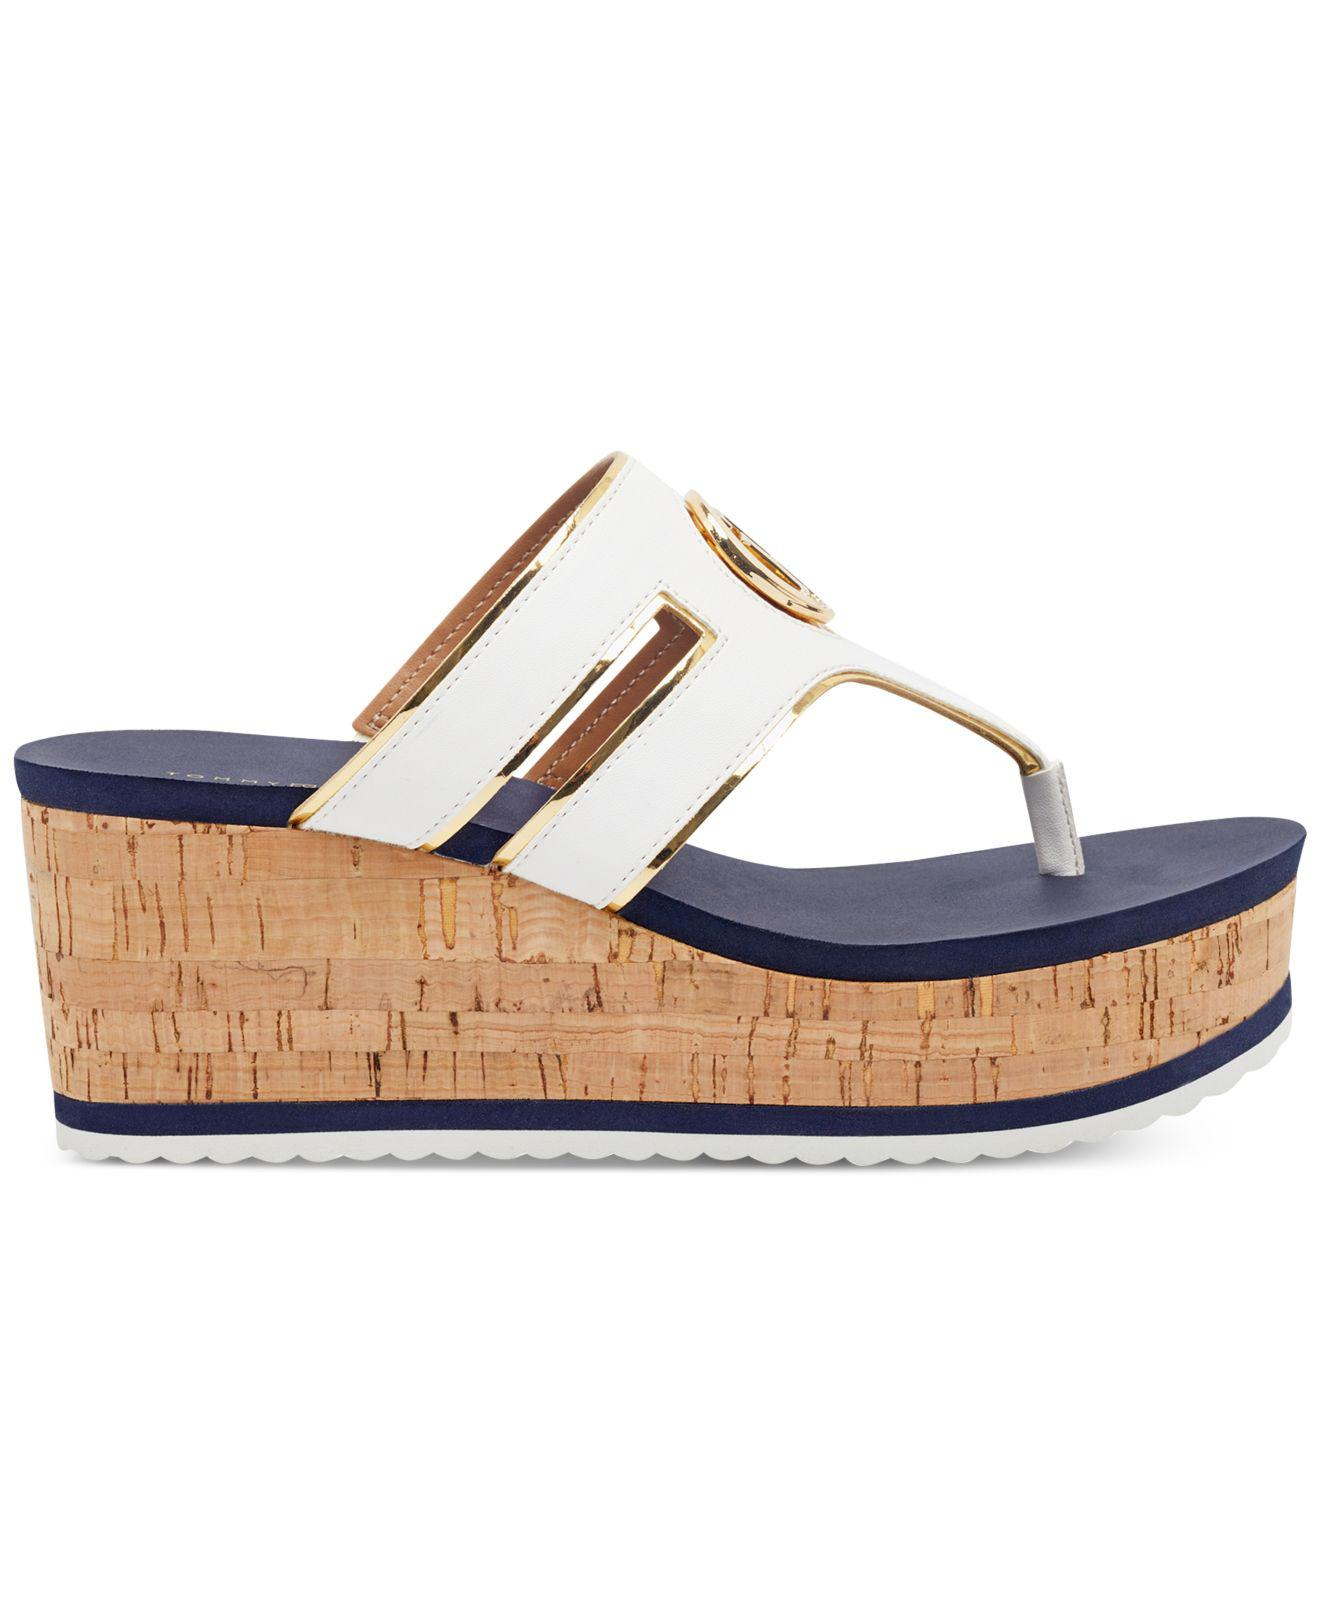 1011bbbaaab Gallery. Previously sold at  Macy s · Women s White Platform Wedges Women s Thong  Sandals ...